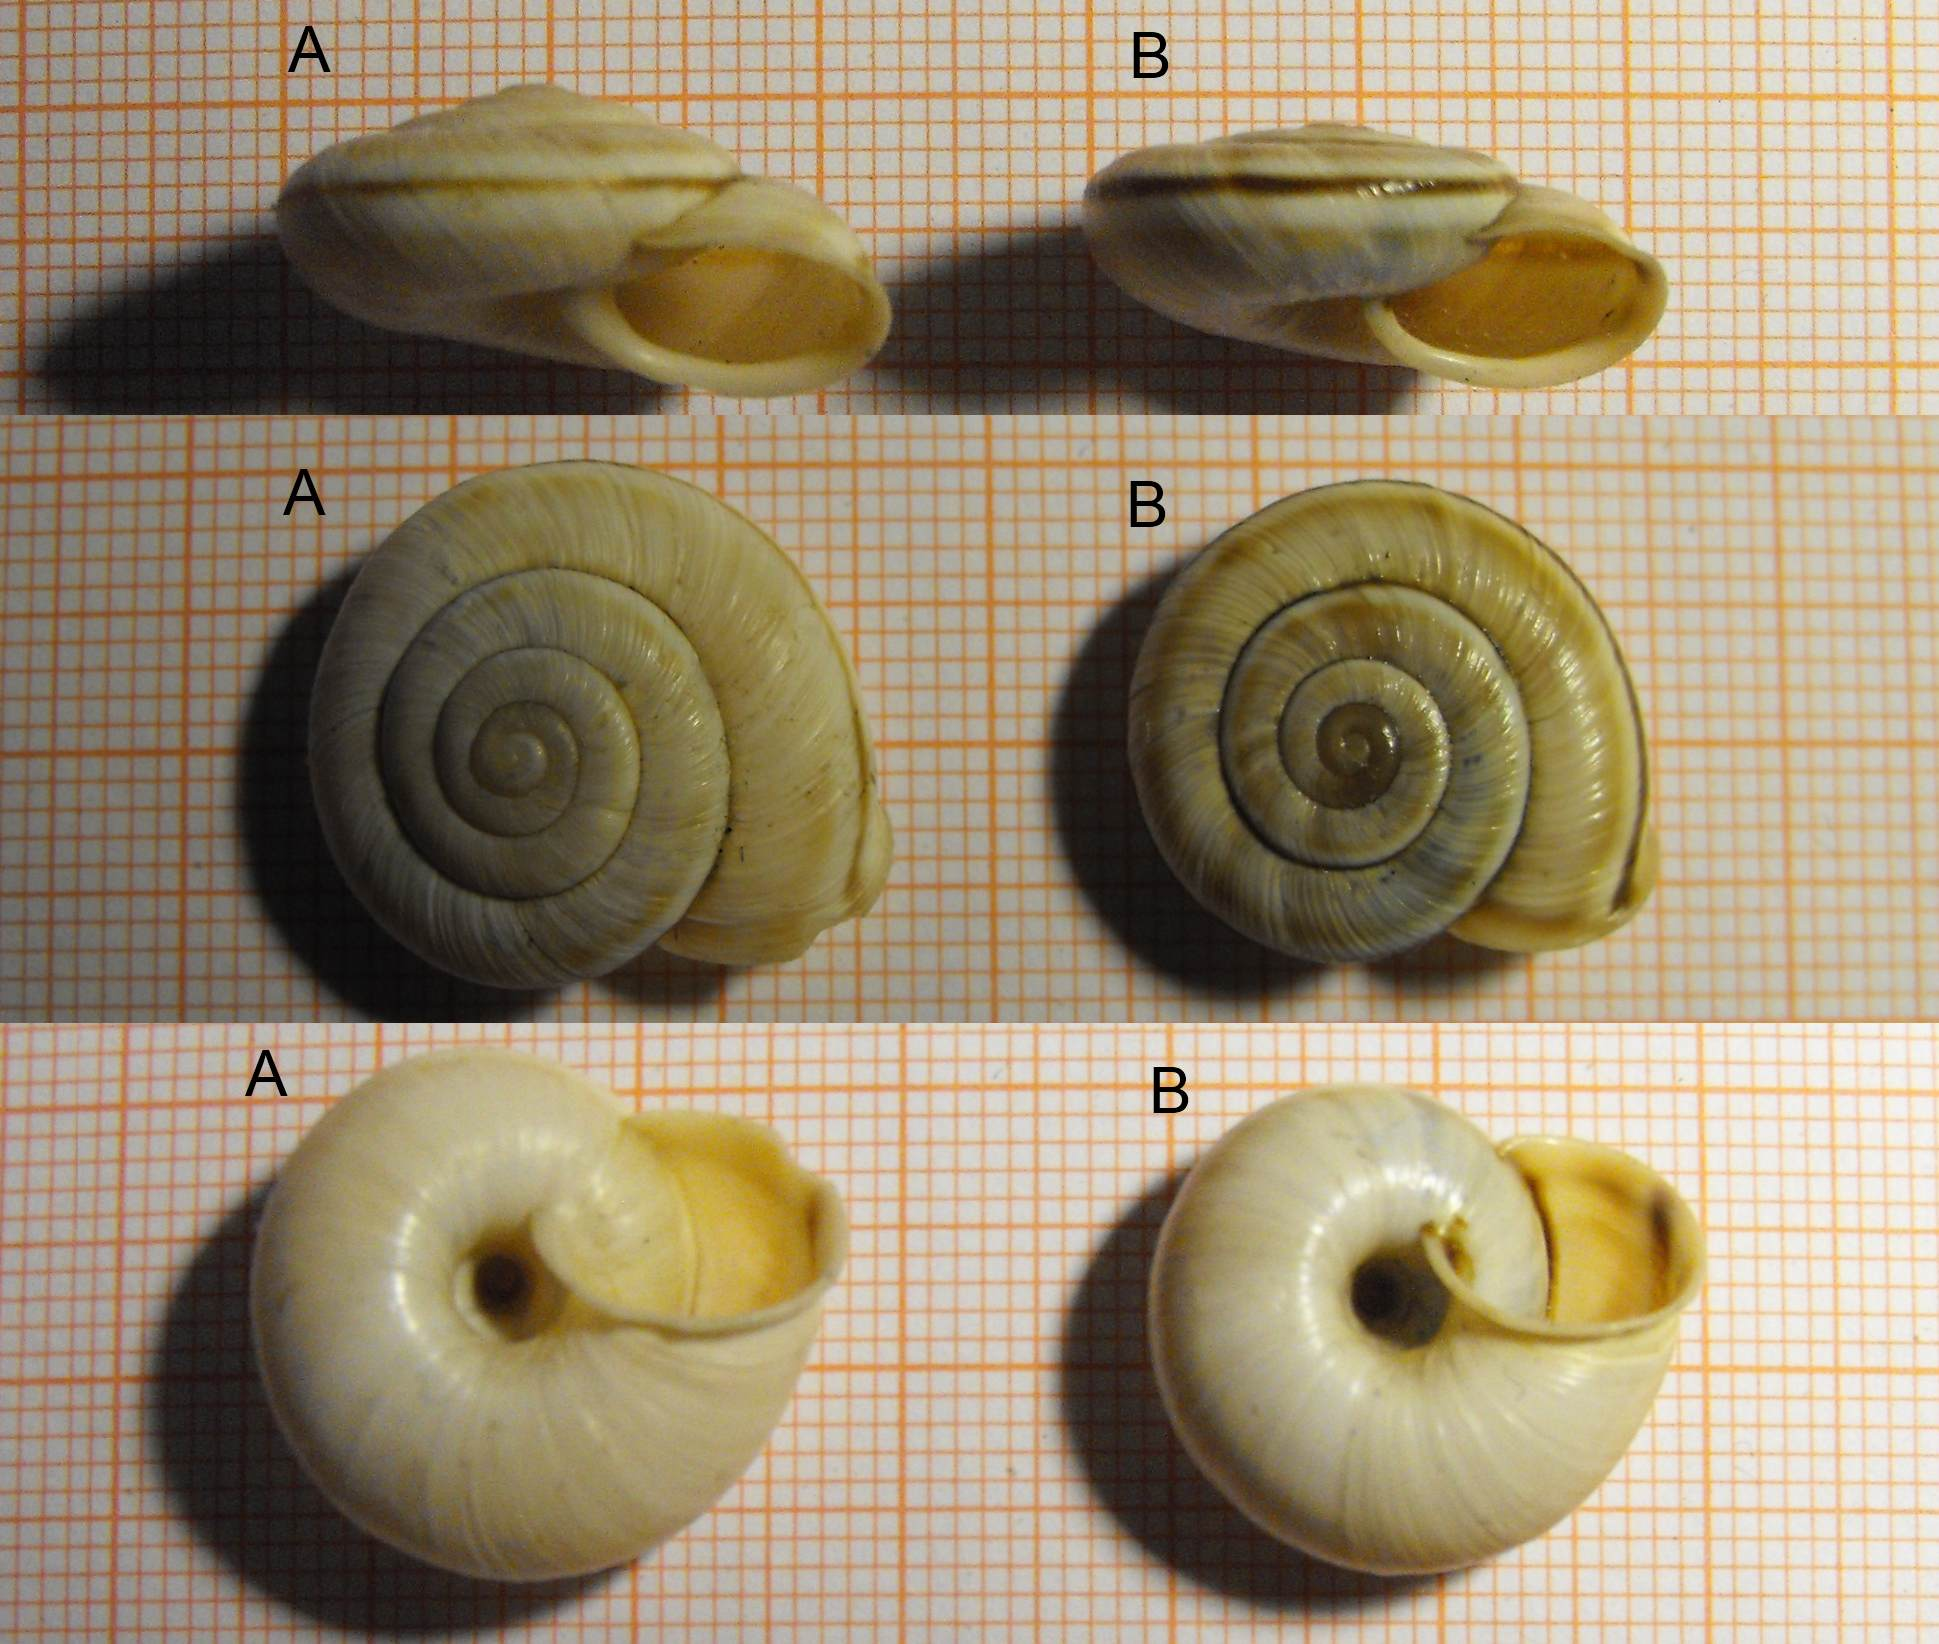 Chilostoma cingulatum asperulum (Ehrmann, 1910)